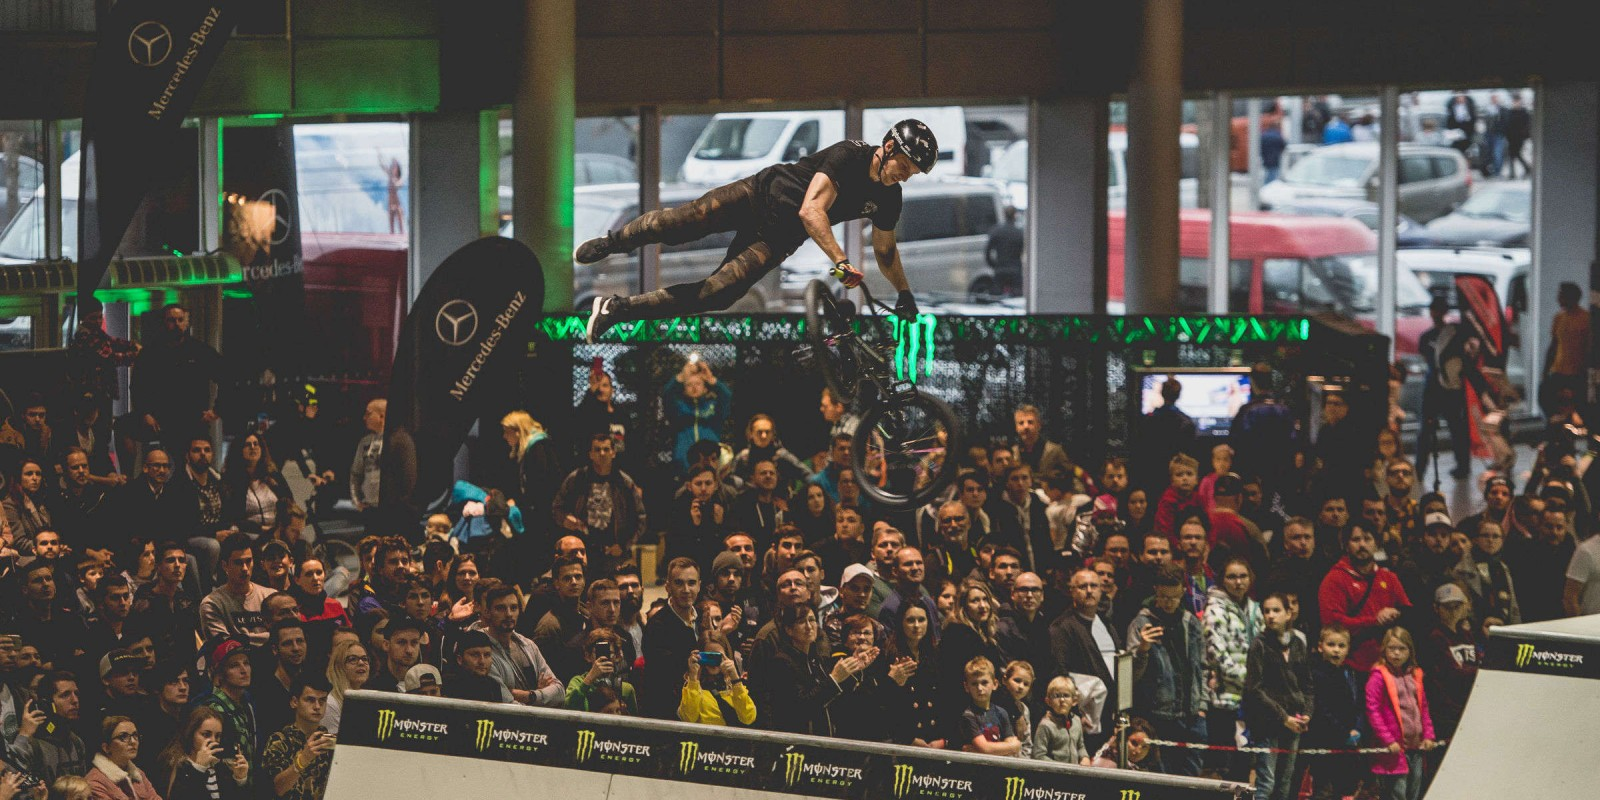 Grand BMX competition taking place in Brno, CZ 2018